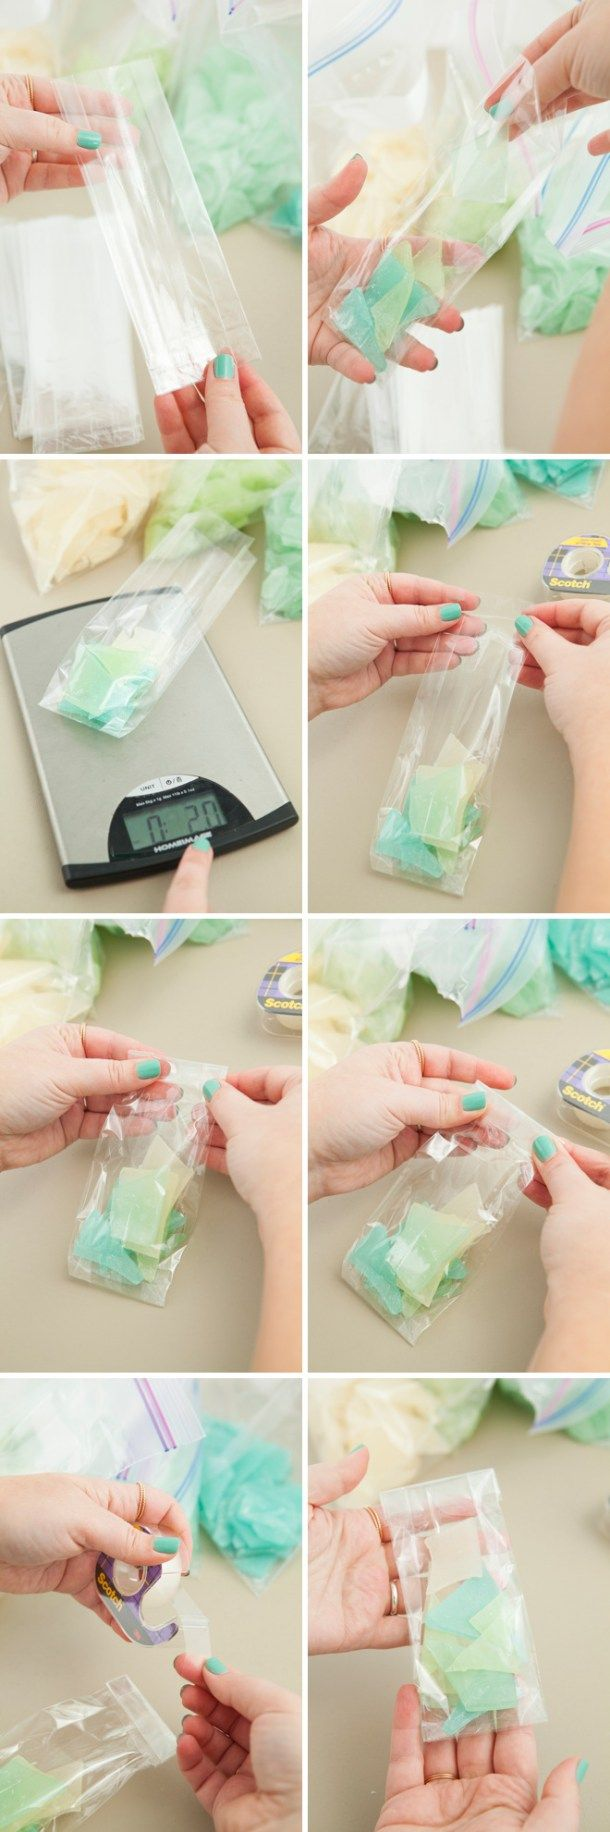 Learn How To Make Your Own Sea Glass Hard Candy! | Candy favors ...